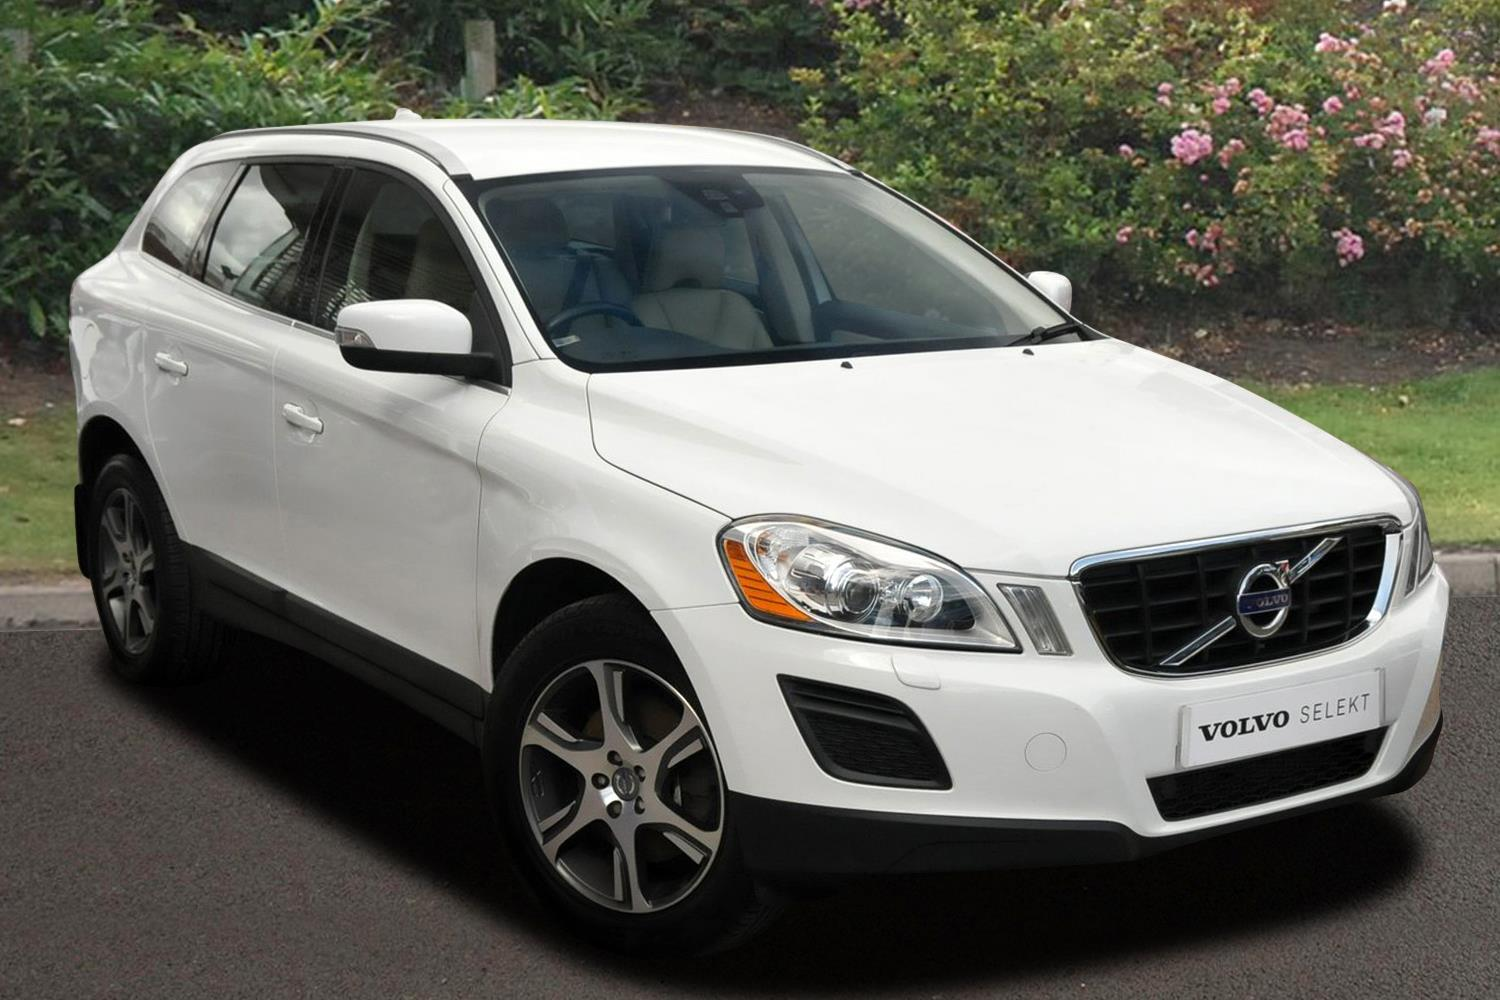 used volvo xc60 d5 215 se lux 5dr awd start stop diesel estate for sale bristol street motors. Black Bedroom Furniture Sets. Home Design Ideas